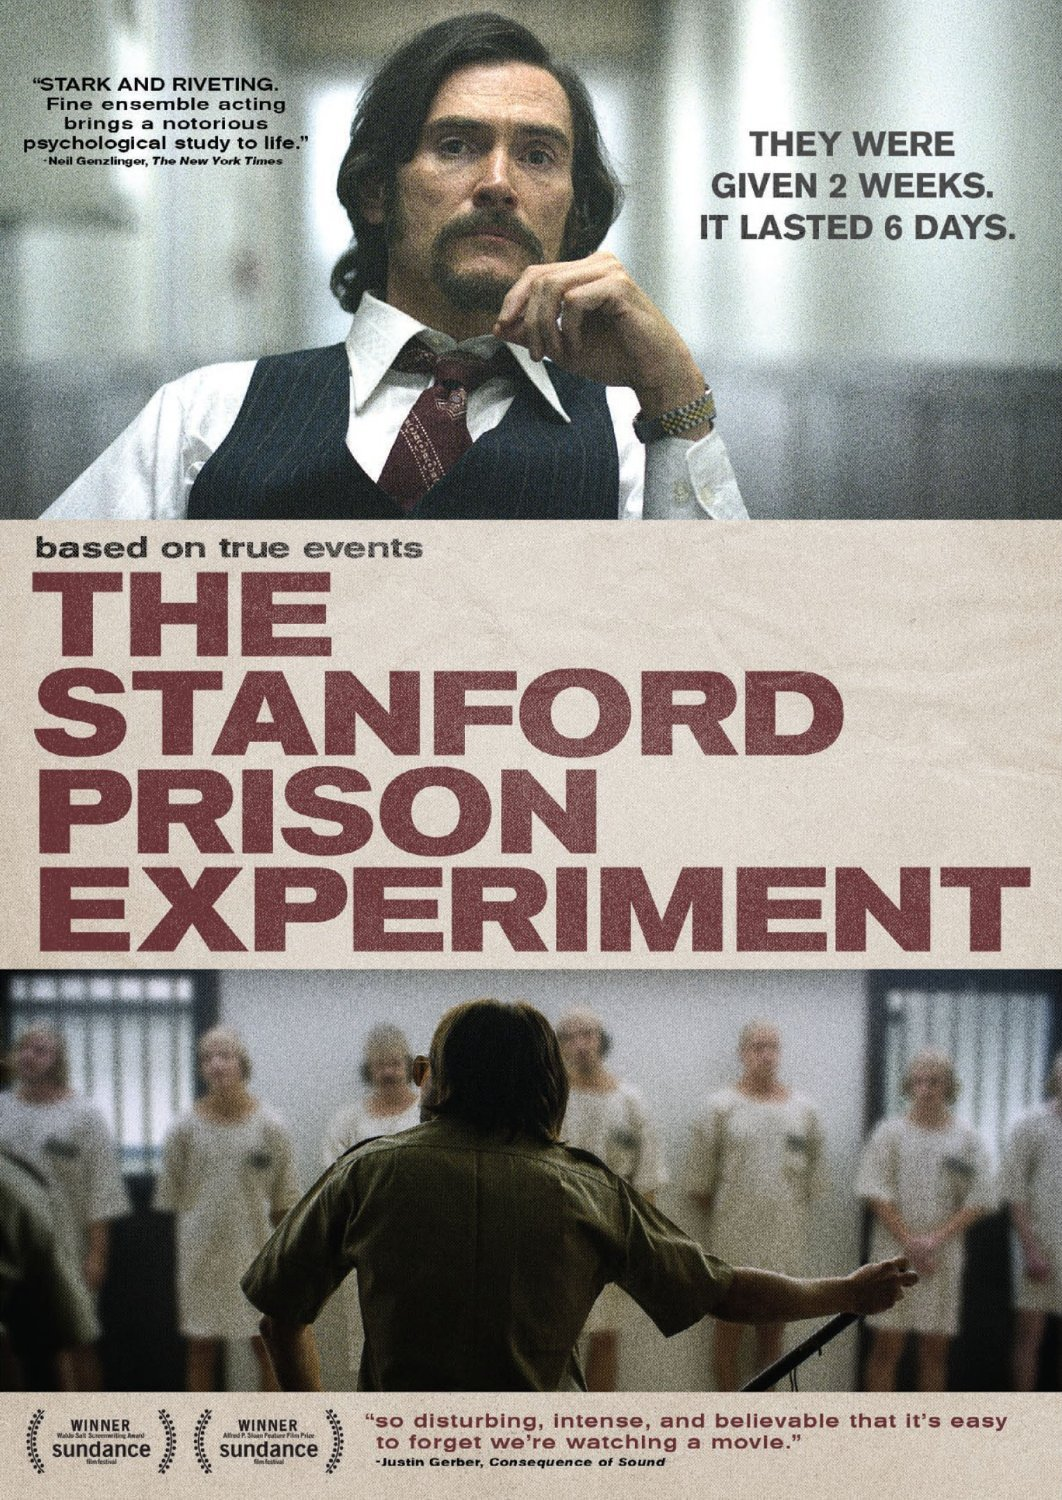 stanford county prison experiment essay Zimbardo's stanford prison experiment took these ideas further by  are  complex and full answers fall beyond the scope of this essay.